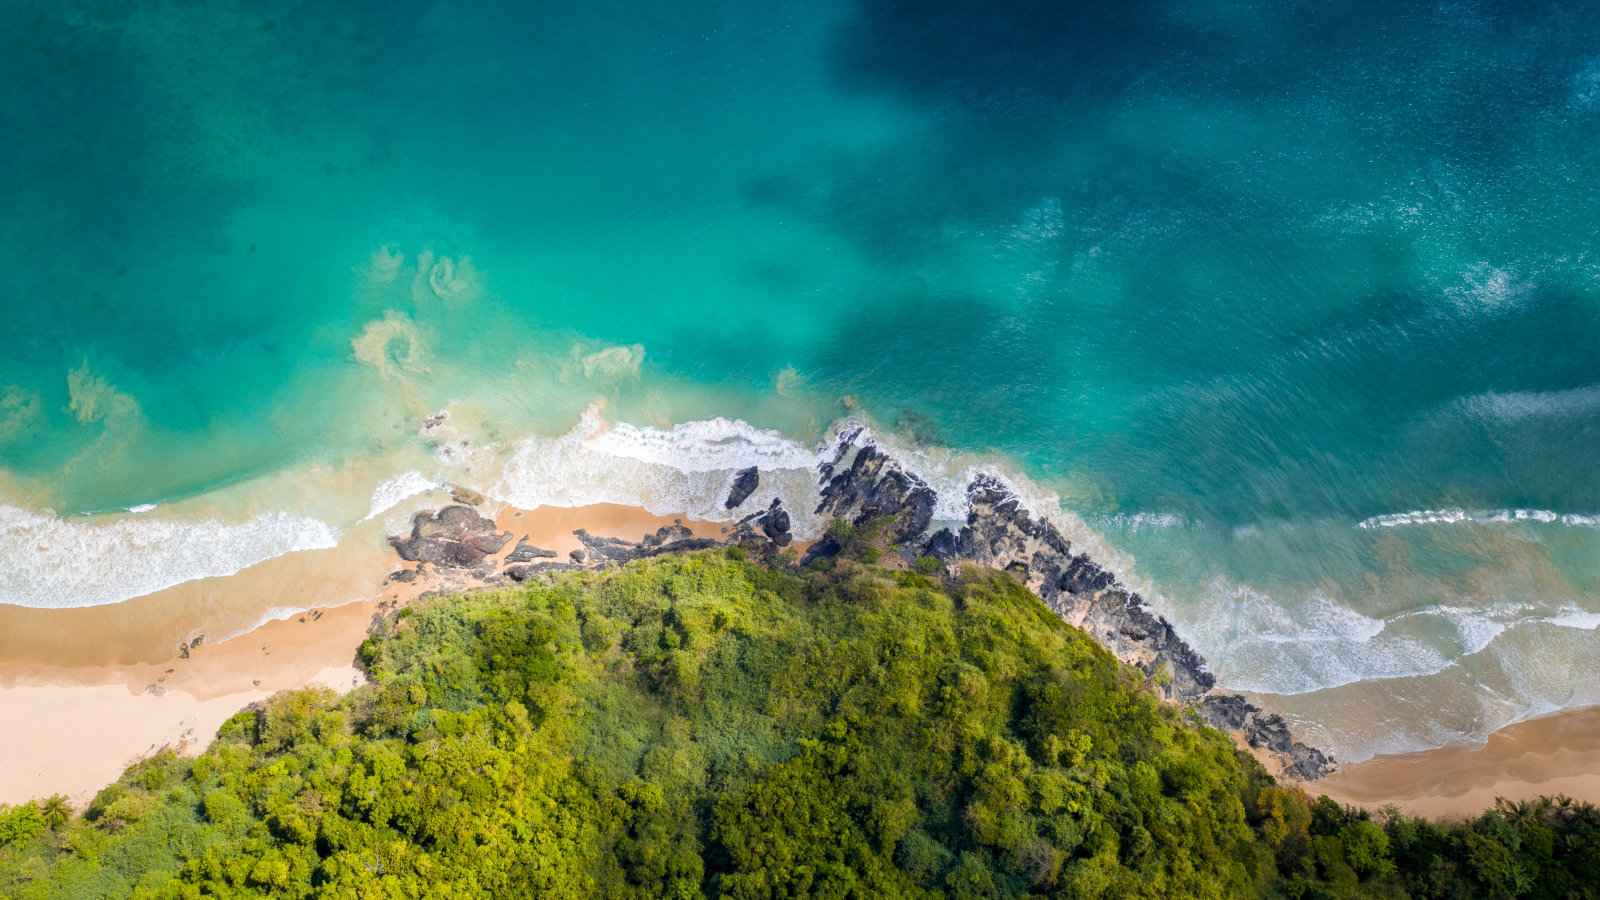 Tour B from El Nido is a great option if you want to relax on stunning beaches